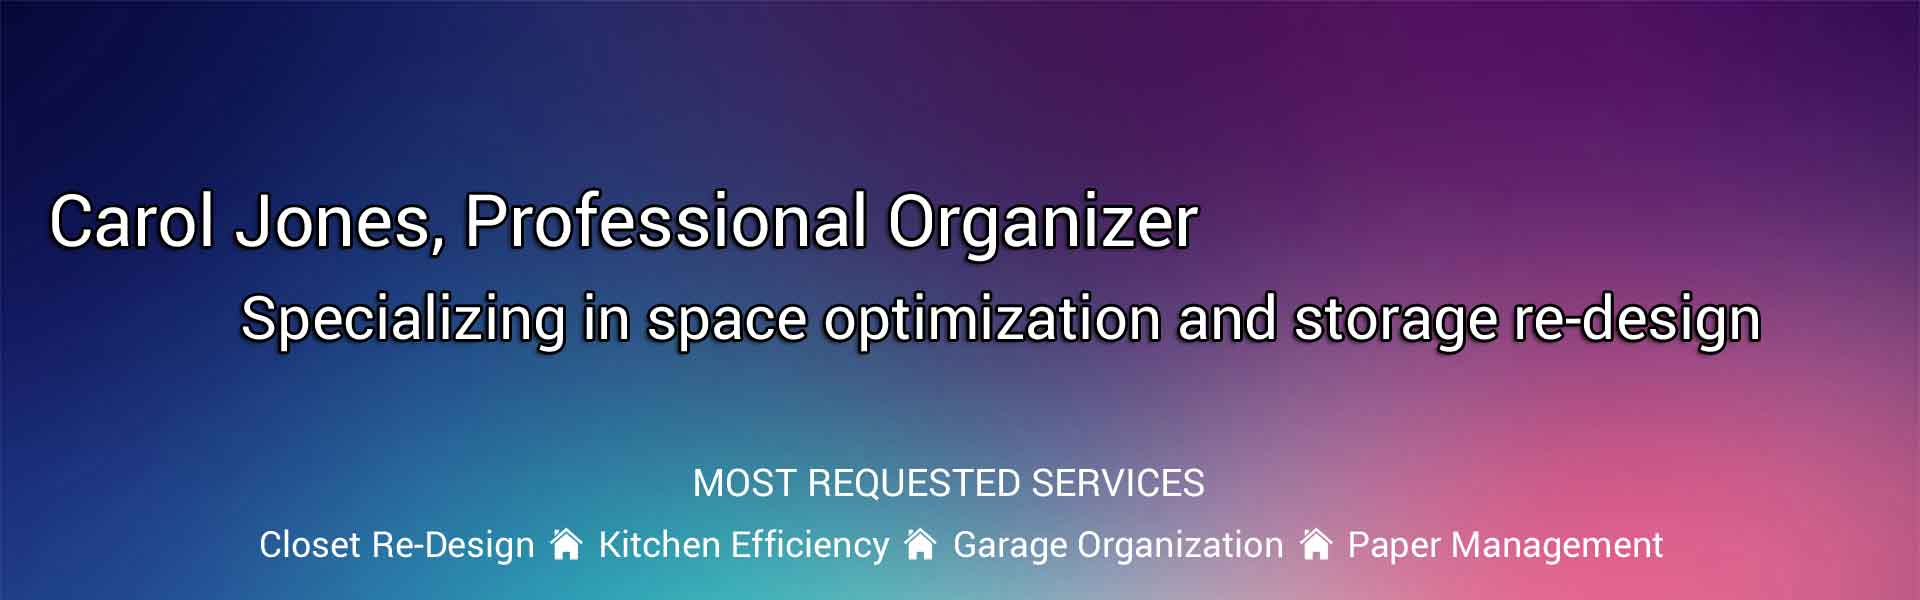 Carol Jones, Professional Organizer Residential organizing and space design for your home